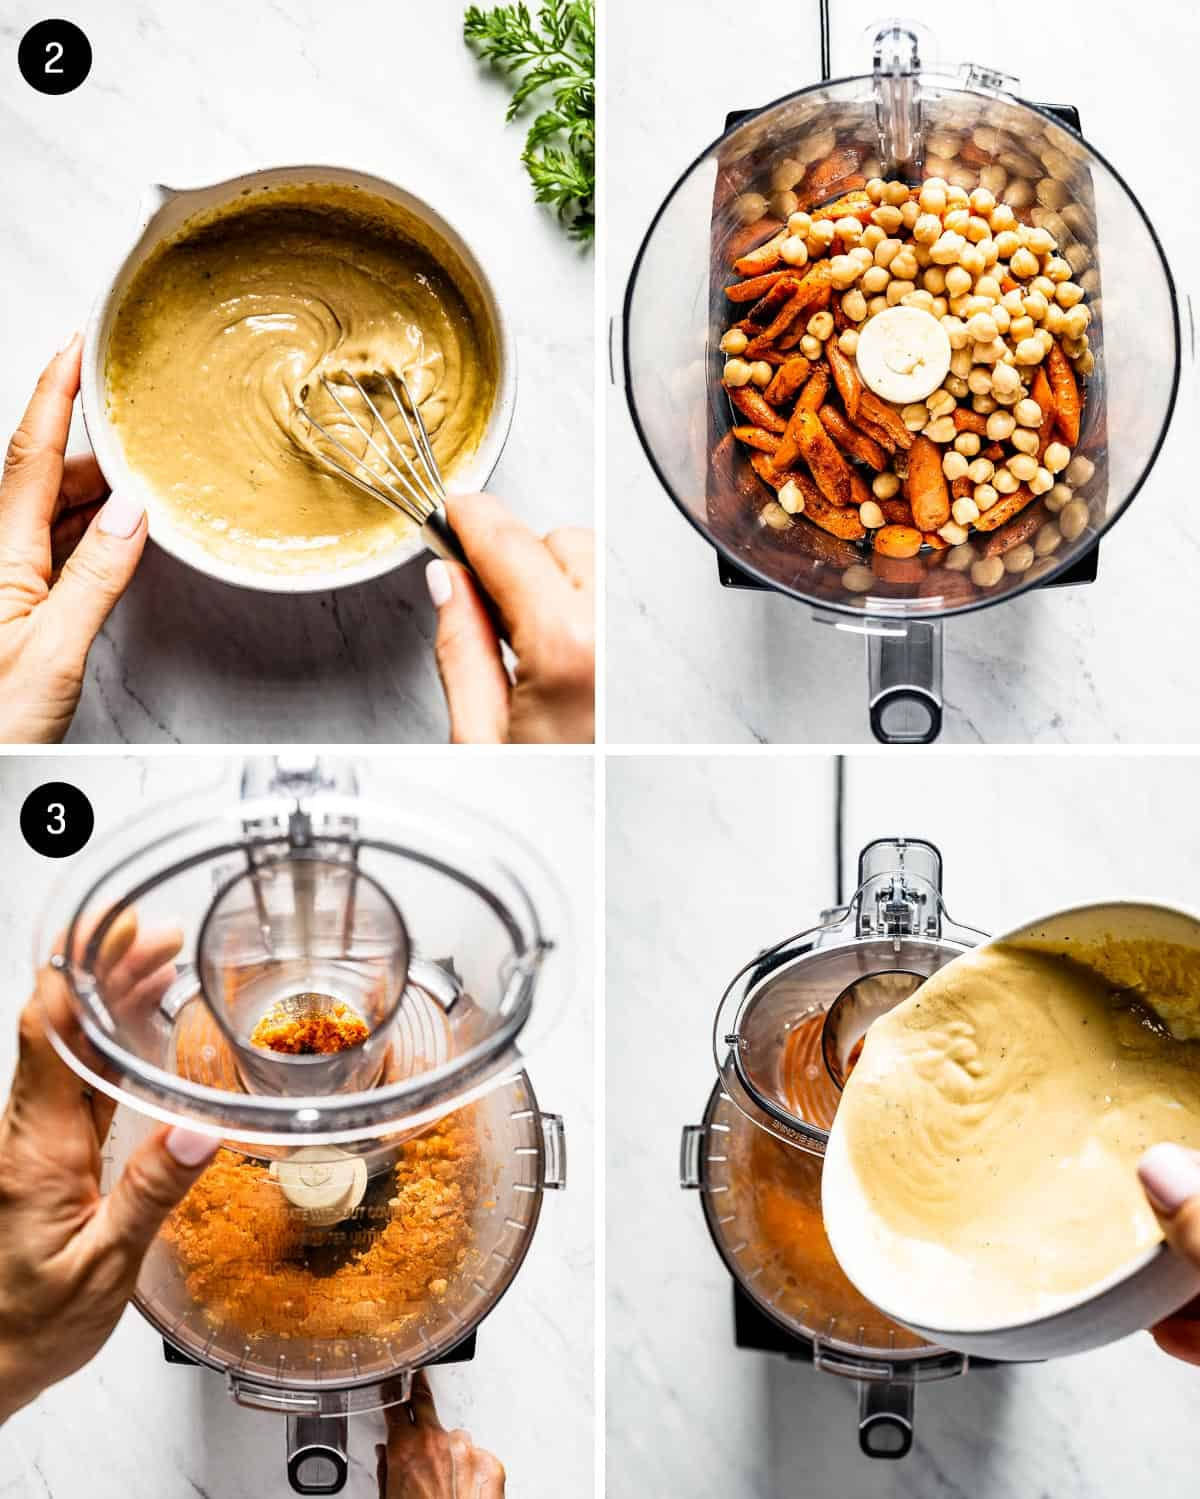 person showing steps of making carrot hummus in four photos